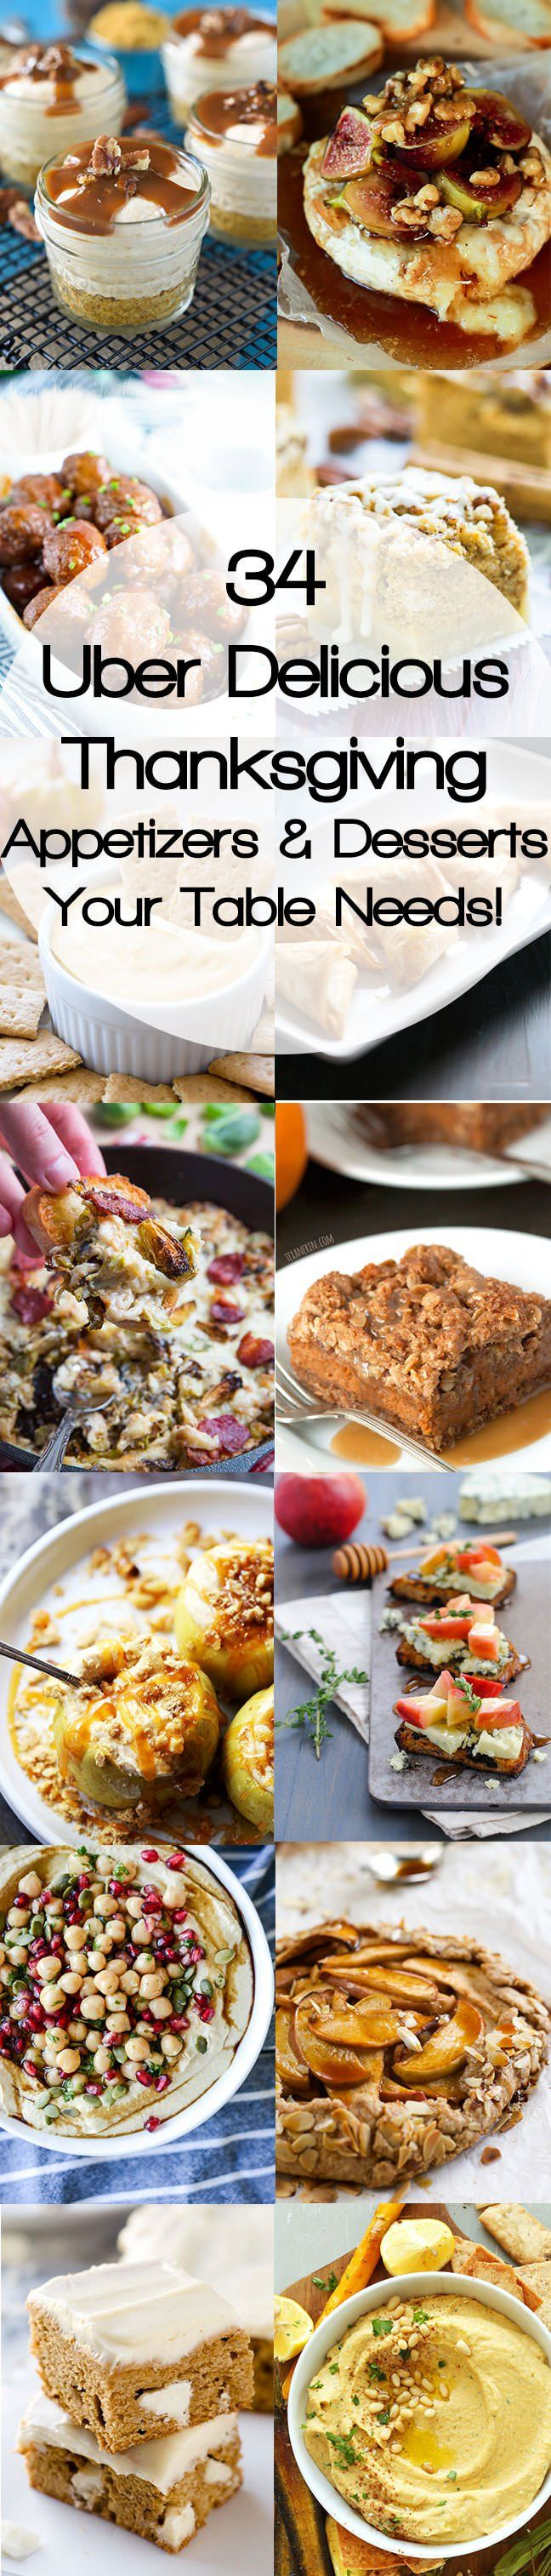 Healthy Thanksgiving Appetizers & Desserts